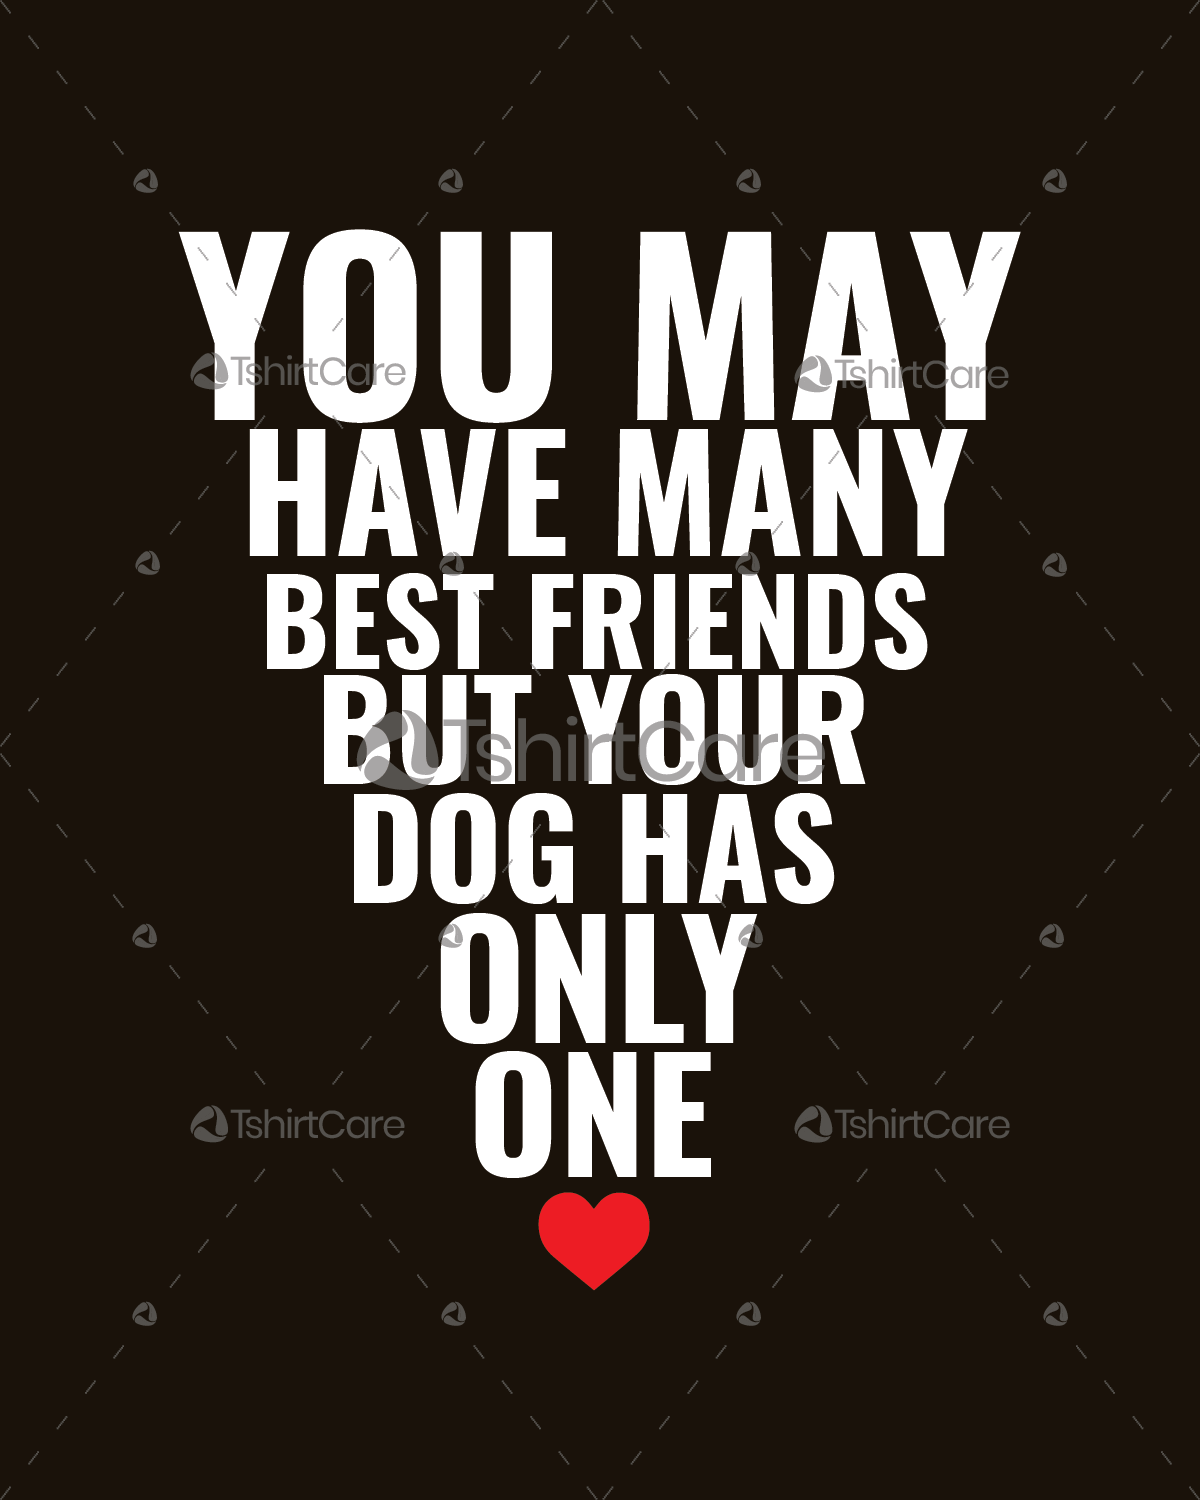 You May Have Many Best Friend But Your Dog Has Only One T Shirt Design Your Dog Is Your Best Friend Tee For Men Women Tshirtcare